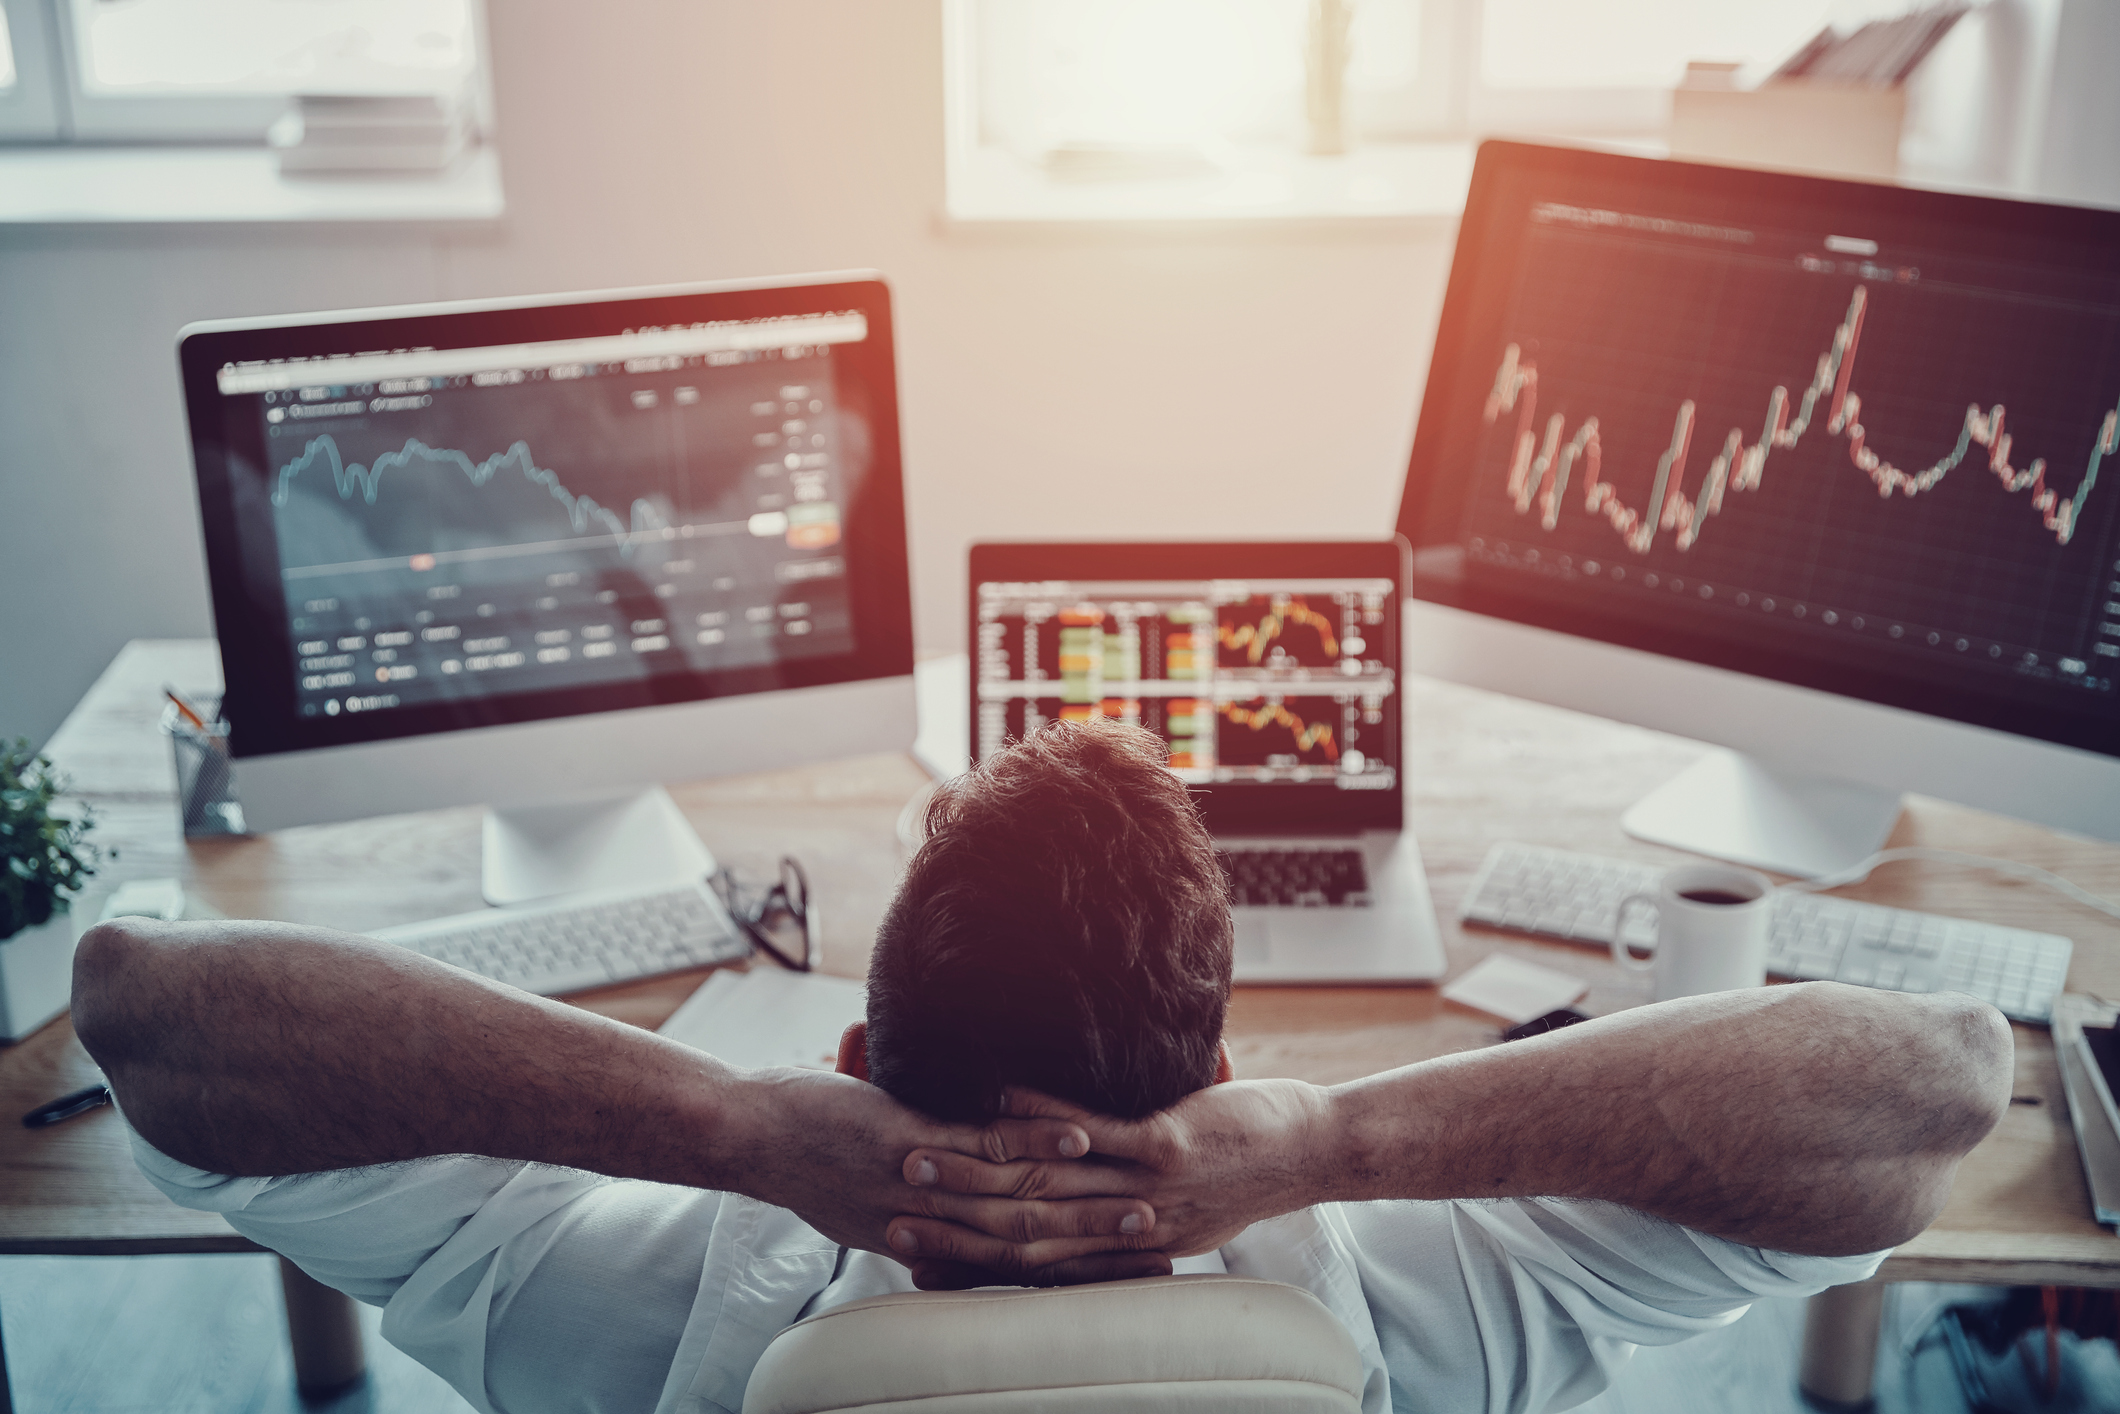 Guy leaning back and monitoring three screens featuring various stock information.